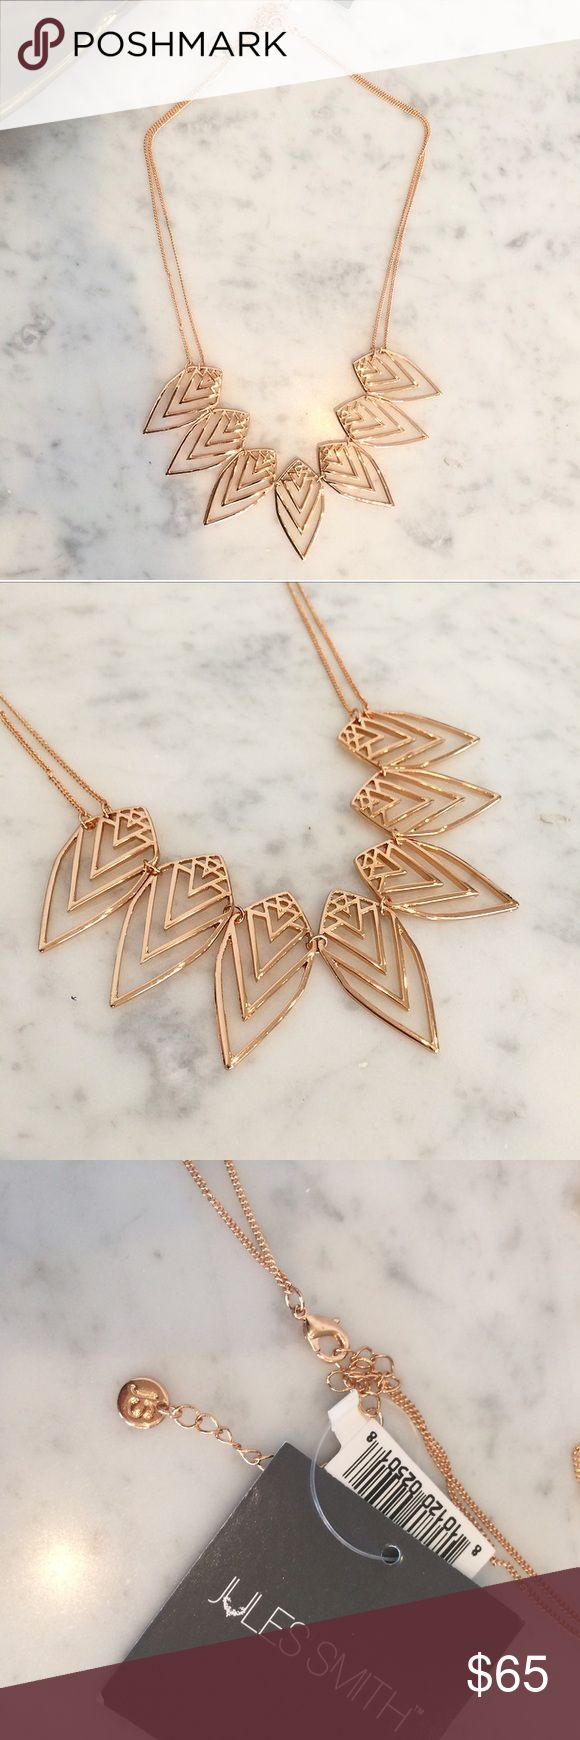 Jules Smith rose gold leaf necklace New! Jules Smith 14 karat rose golden plated geometric leaf statement necklace, double stranded with adjustable length lobster clasp closure. It's a great tone for fall/winter and will elevate any outfit. No trades. Jules Smith Jewelry Necklaces